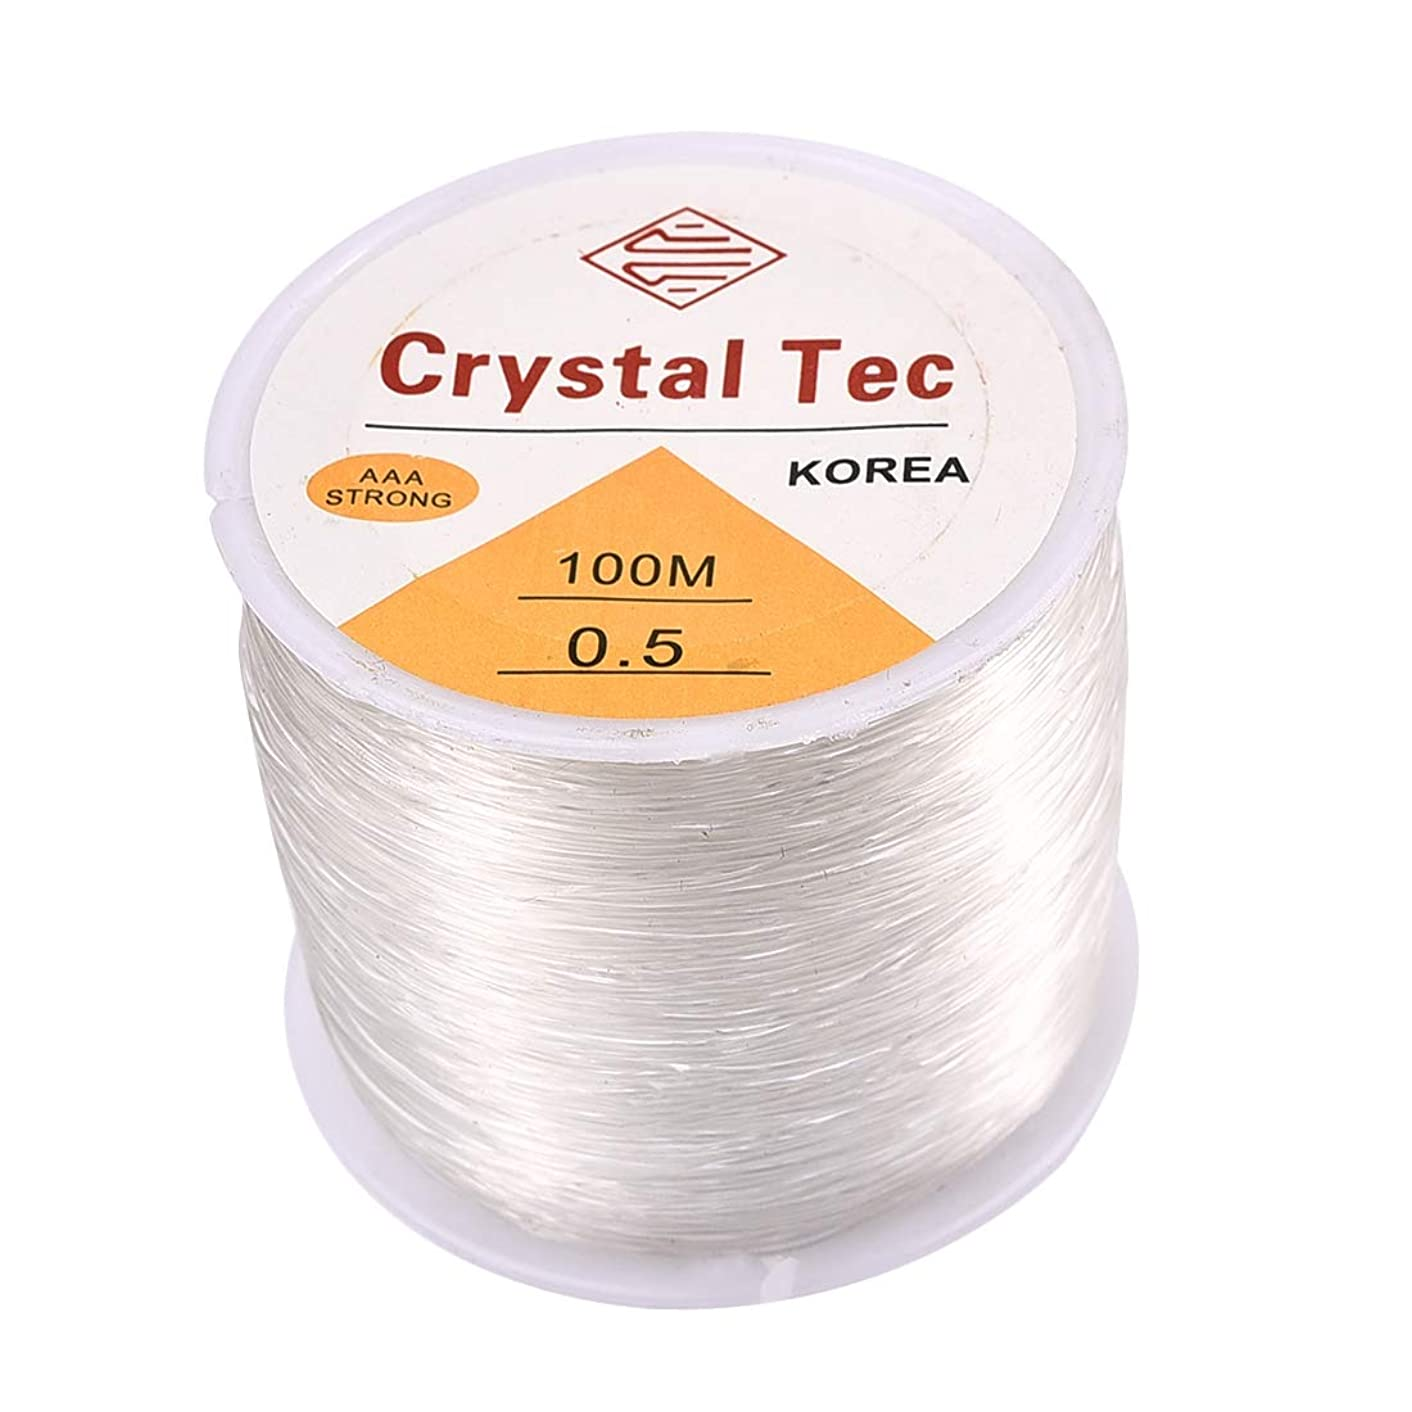 1 Roll 100M Elastic Bracelet String Cord Clear Stretch Bead Cord for Jewelry Making and Bracelet Making 0.5mm×100m White B